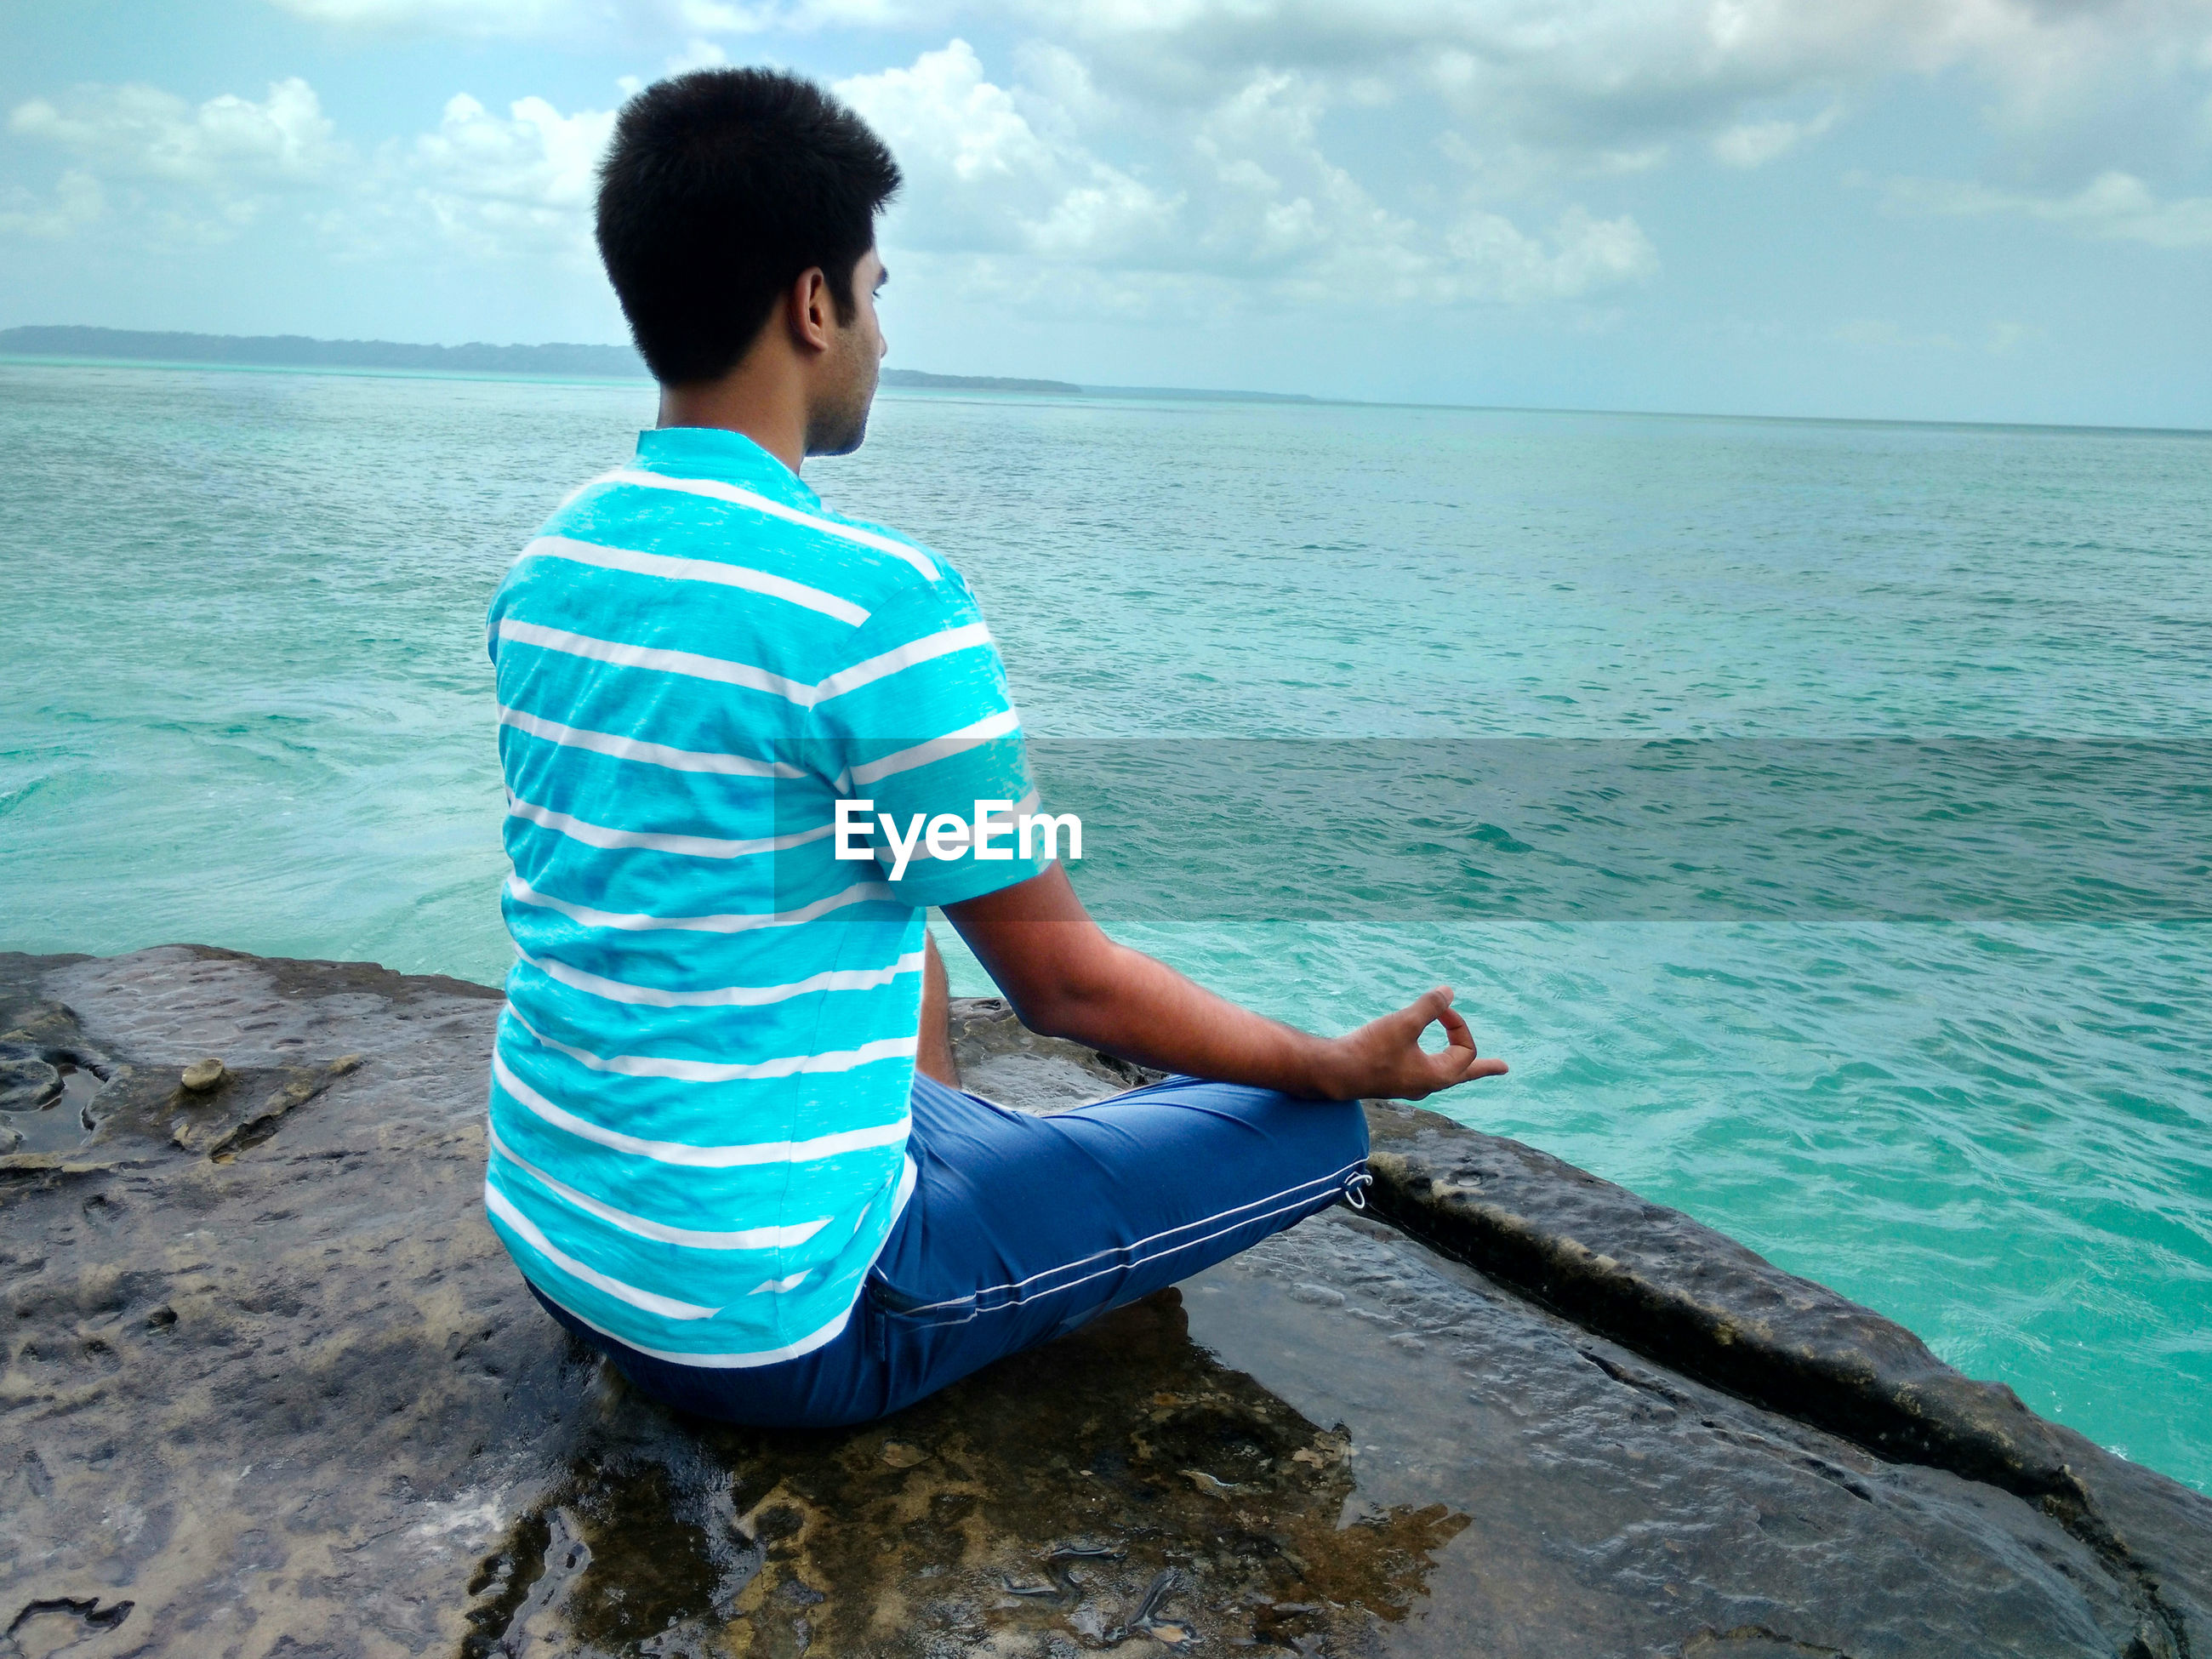 Rear view of man meditating on wet rock by sea against cloudy sky